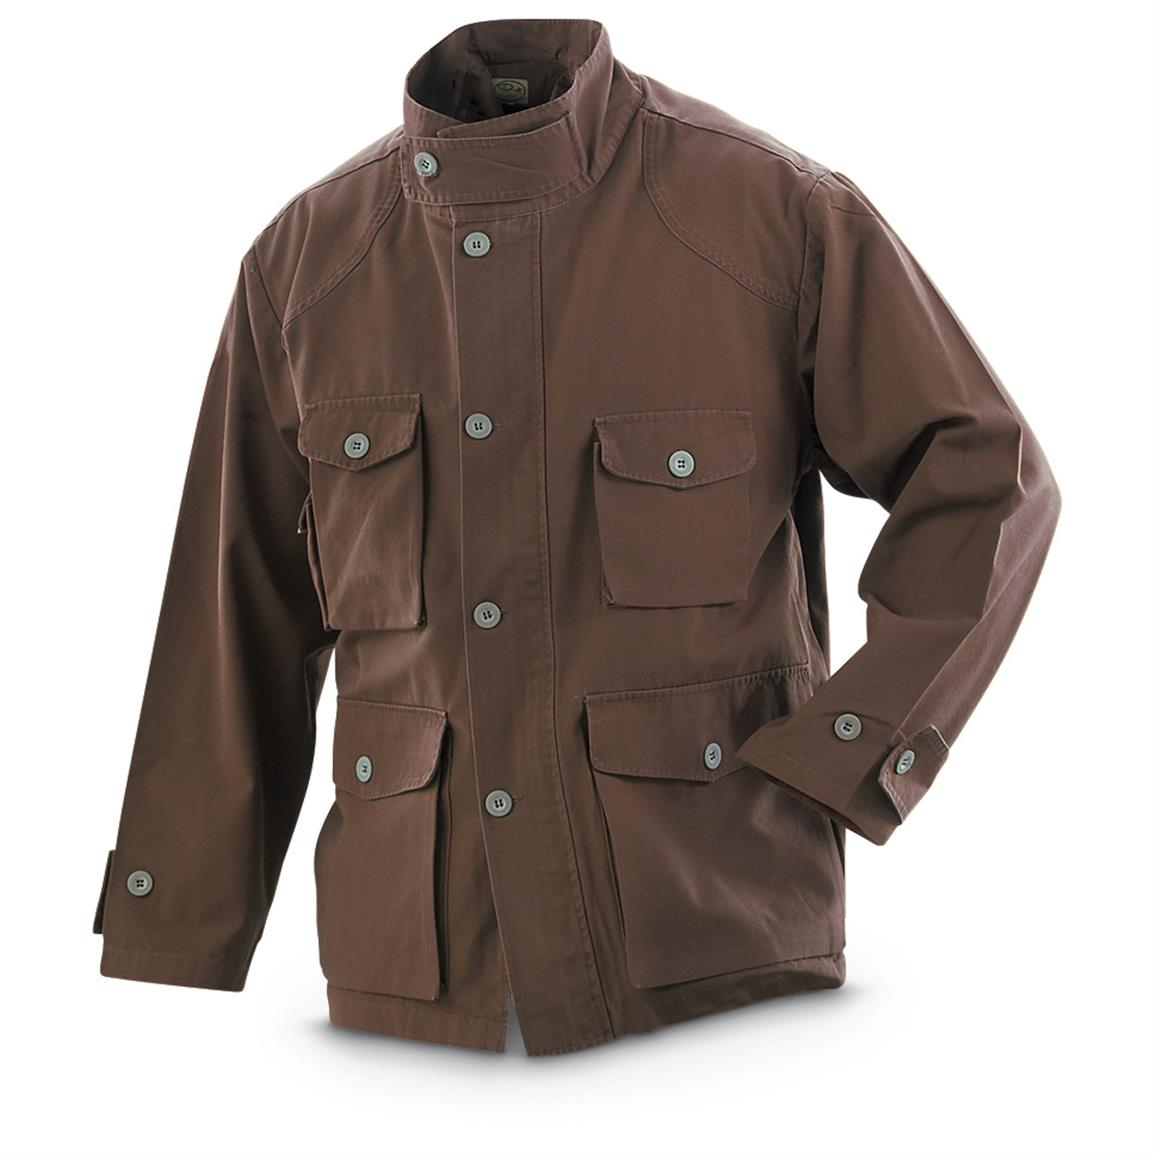 Military-Style Men's Shooters Jacket, Brown